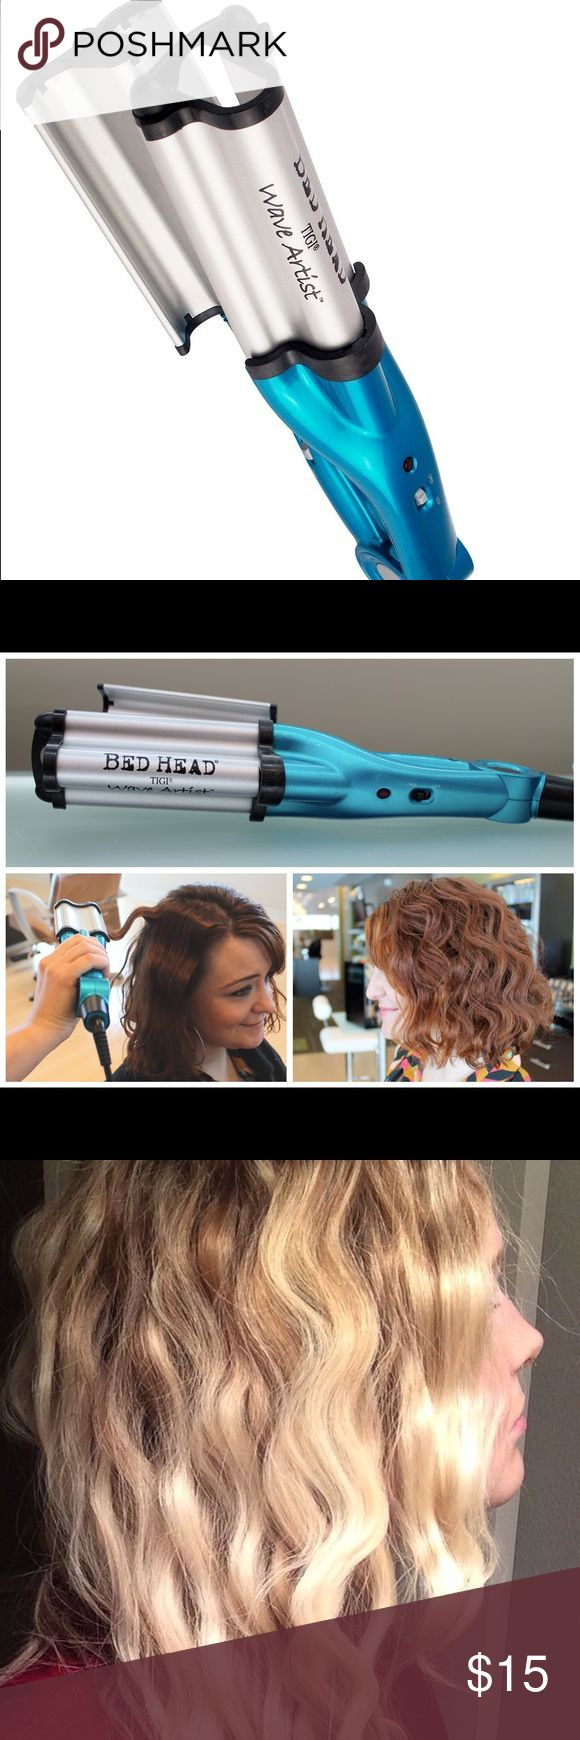 Bed Head Wave Artist Ceramic Deep Waver Turn your hair into a work of art with the Bed Head Wave Artist™ Tourmaline Ceramic Deep Waver. Smooth out hair with a paddle brush after using for distinctive, masterfully sculpted waves that everyone will notice. New. Used once. BedHead Other